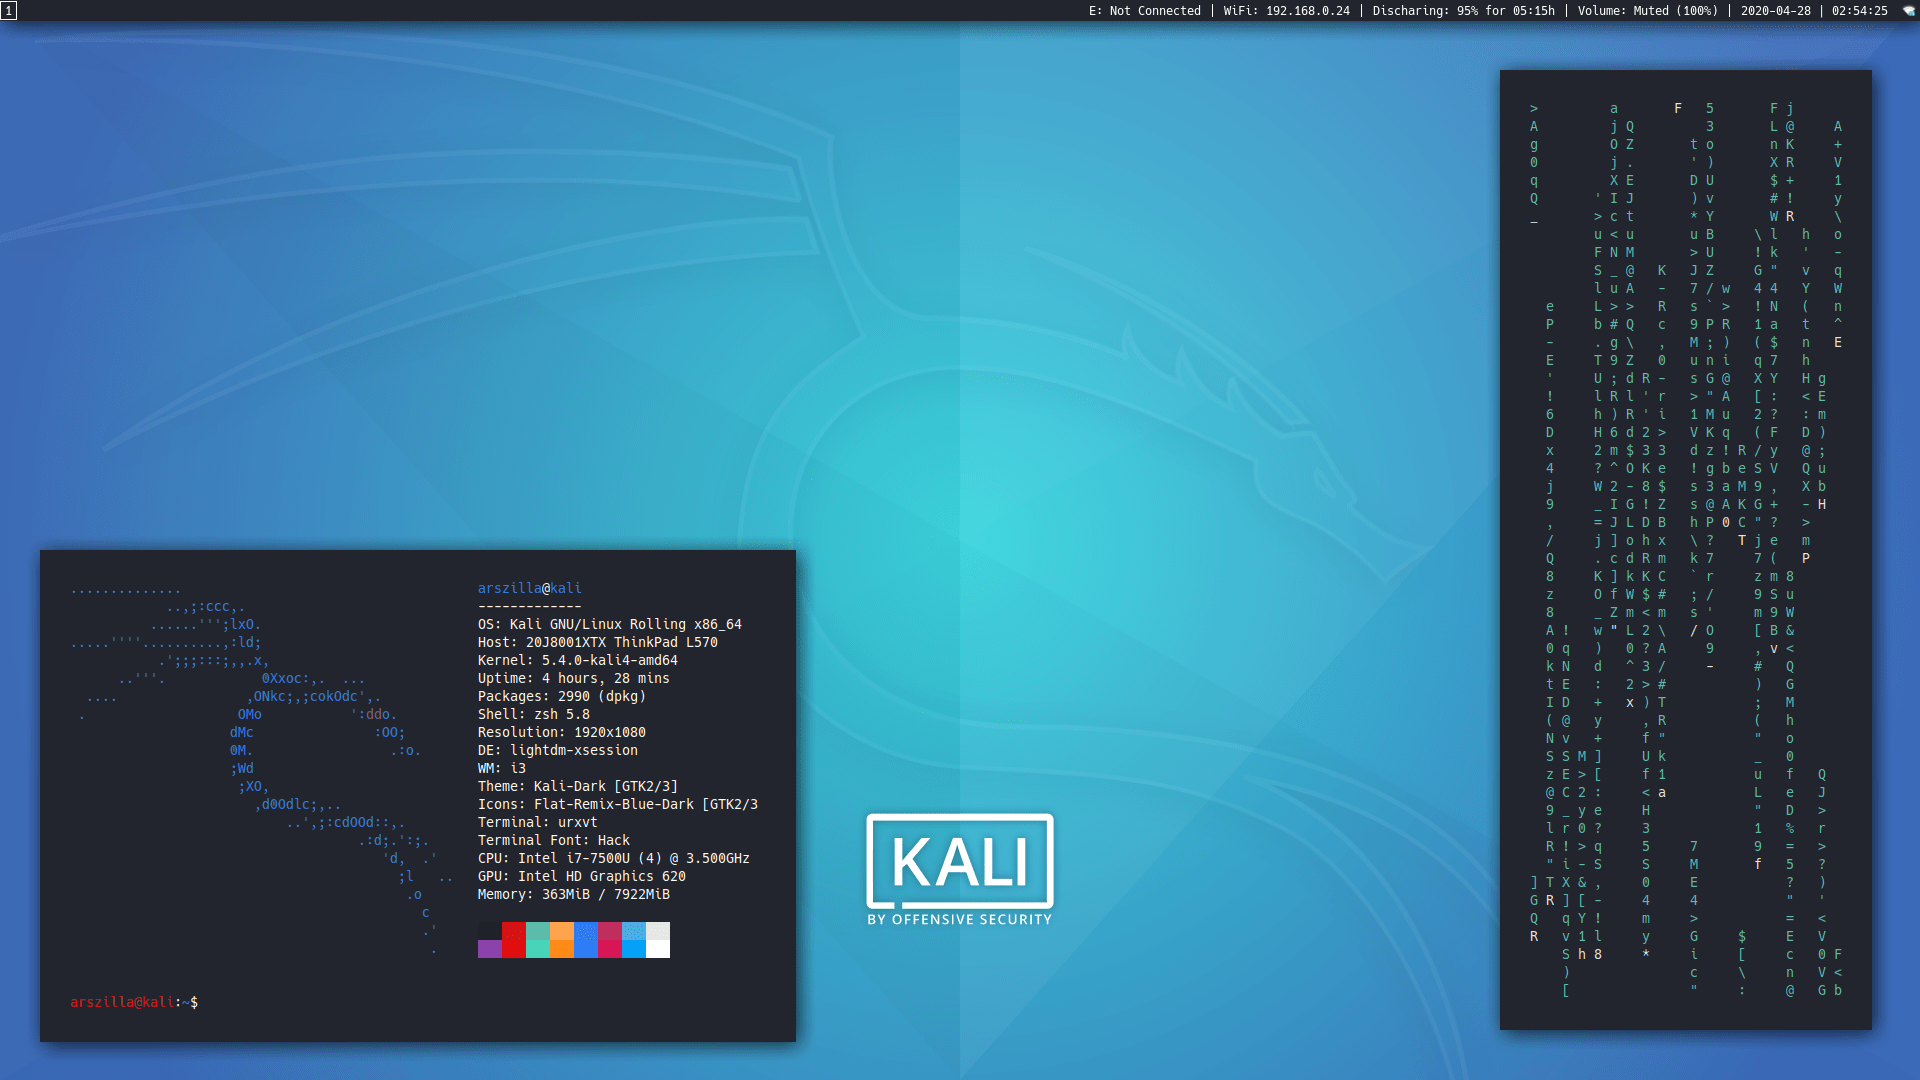 Kali-i3-gaps - An old but an accurate image of the end product